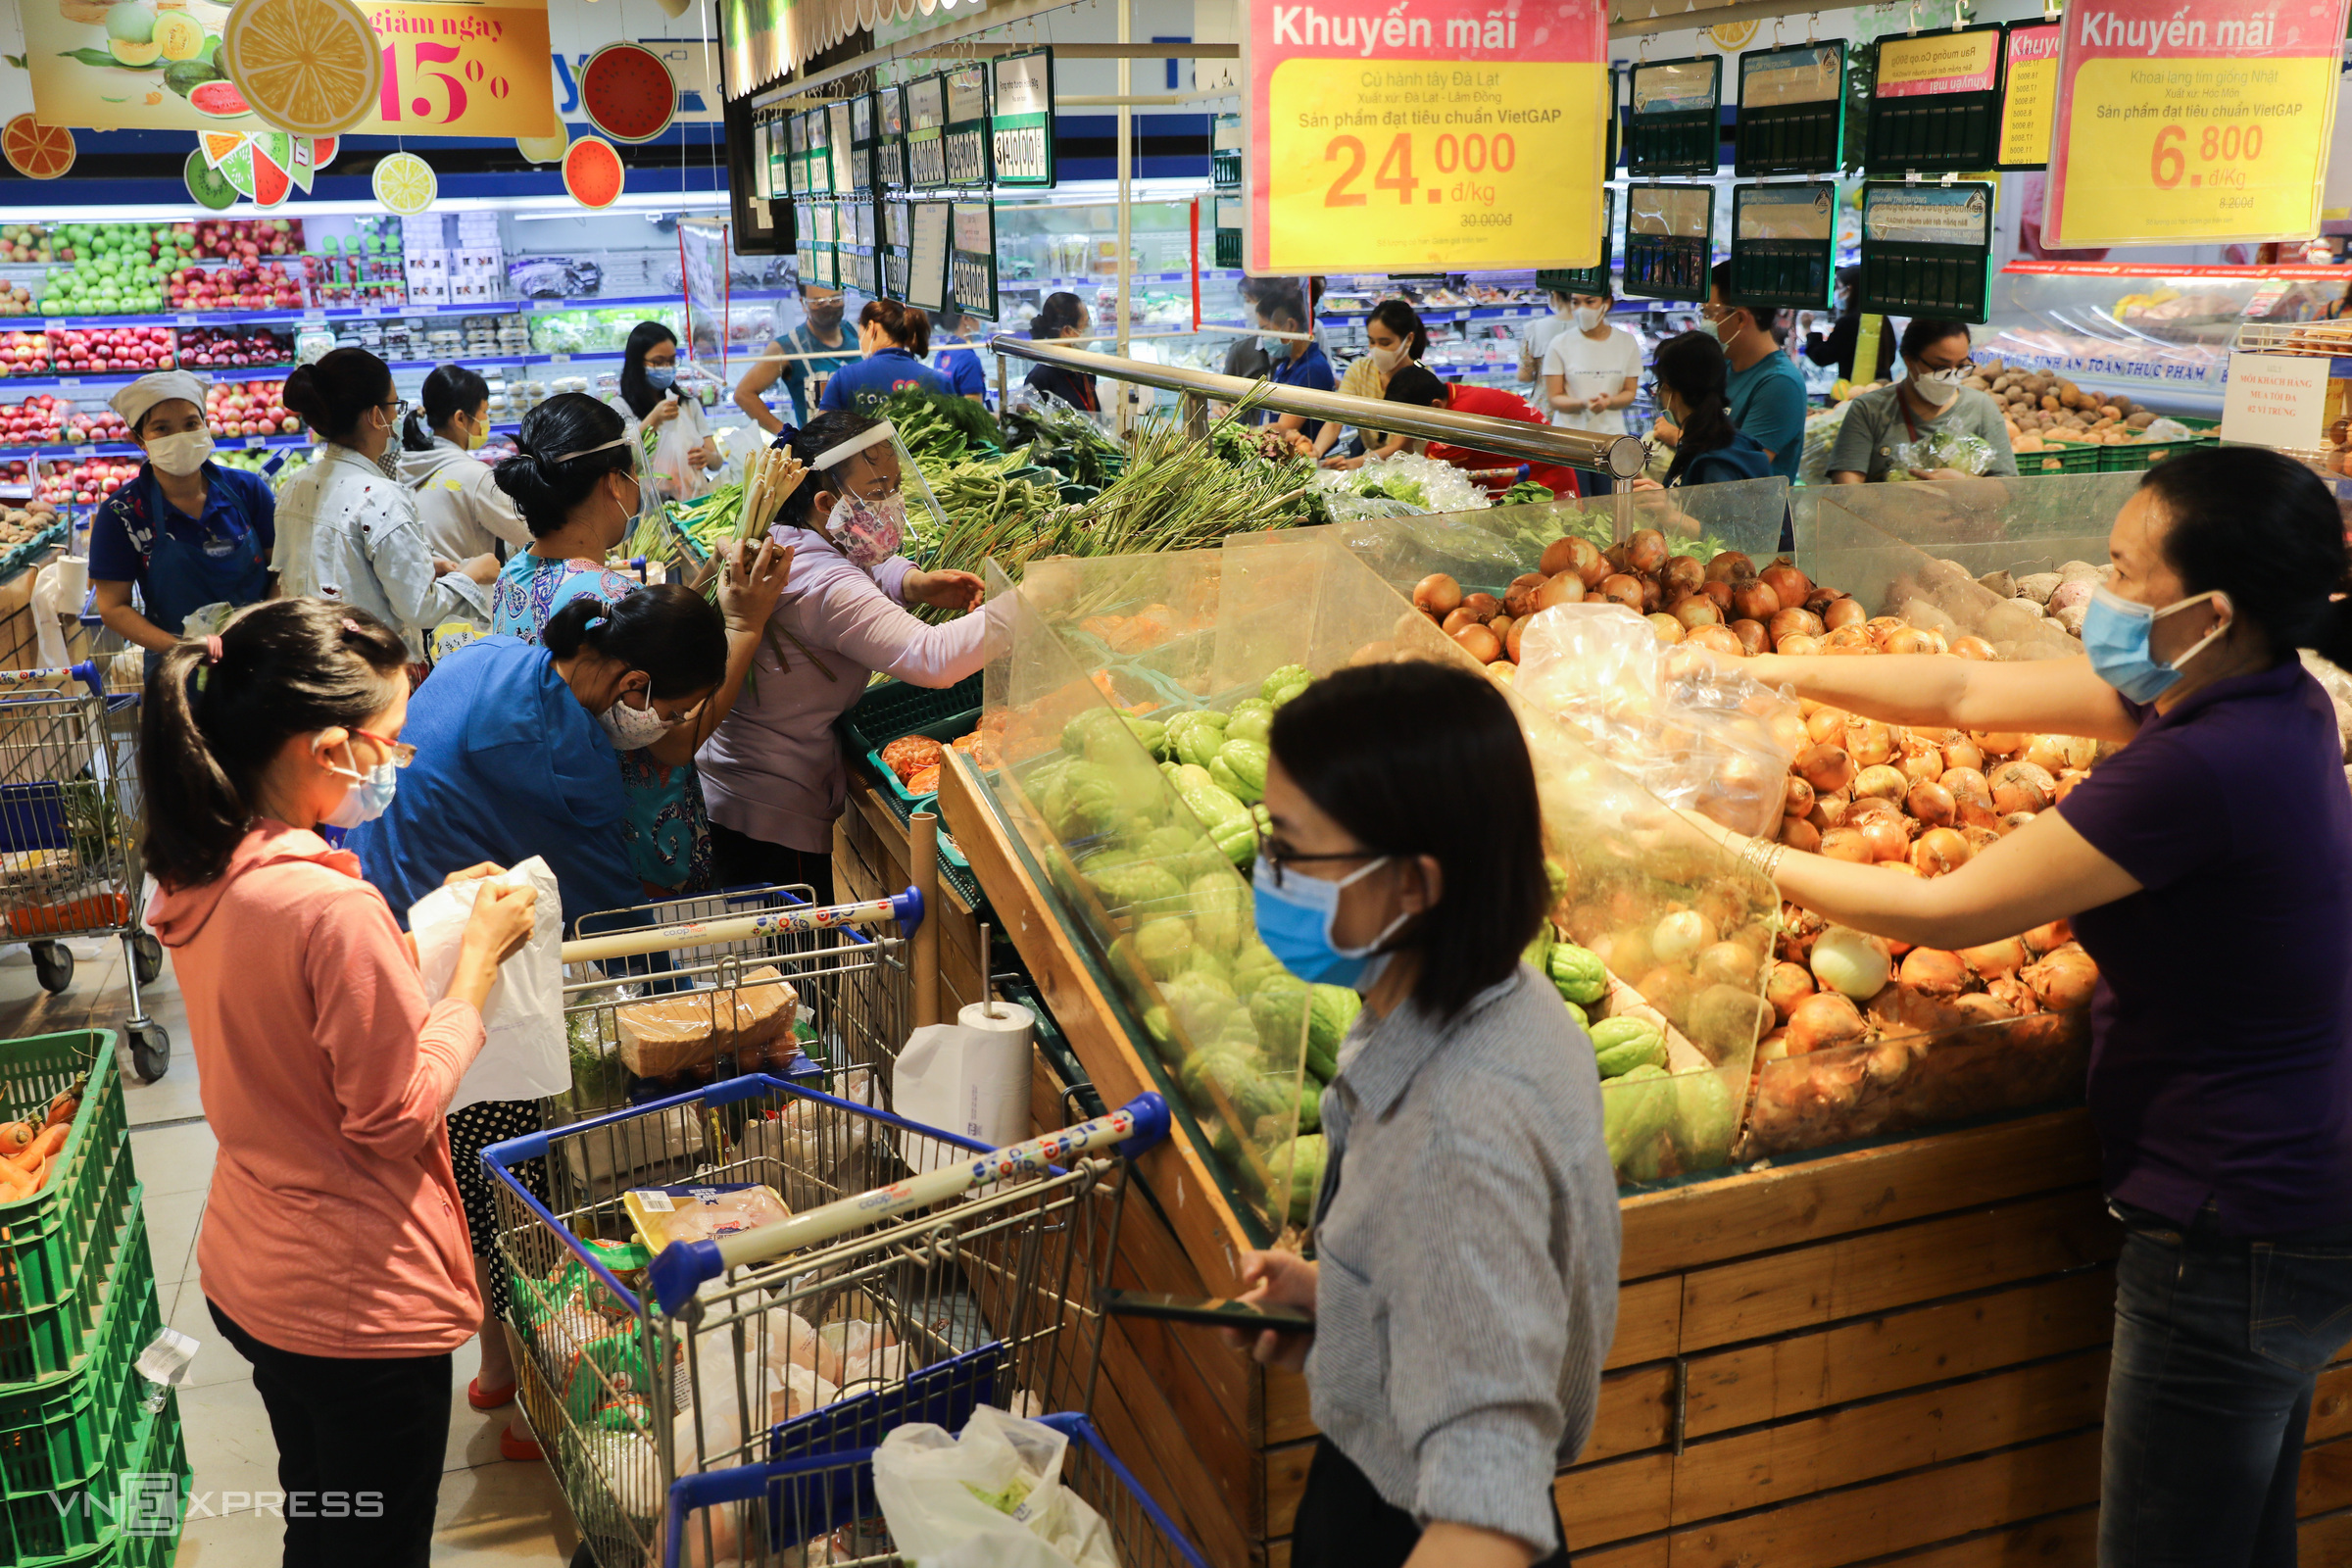 Residents crowd supermarkets in stockpiling rush